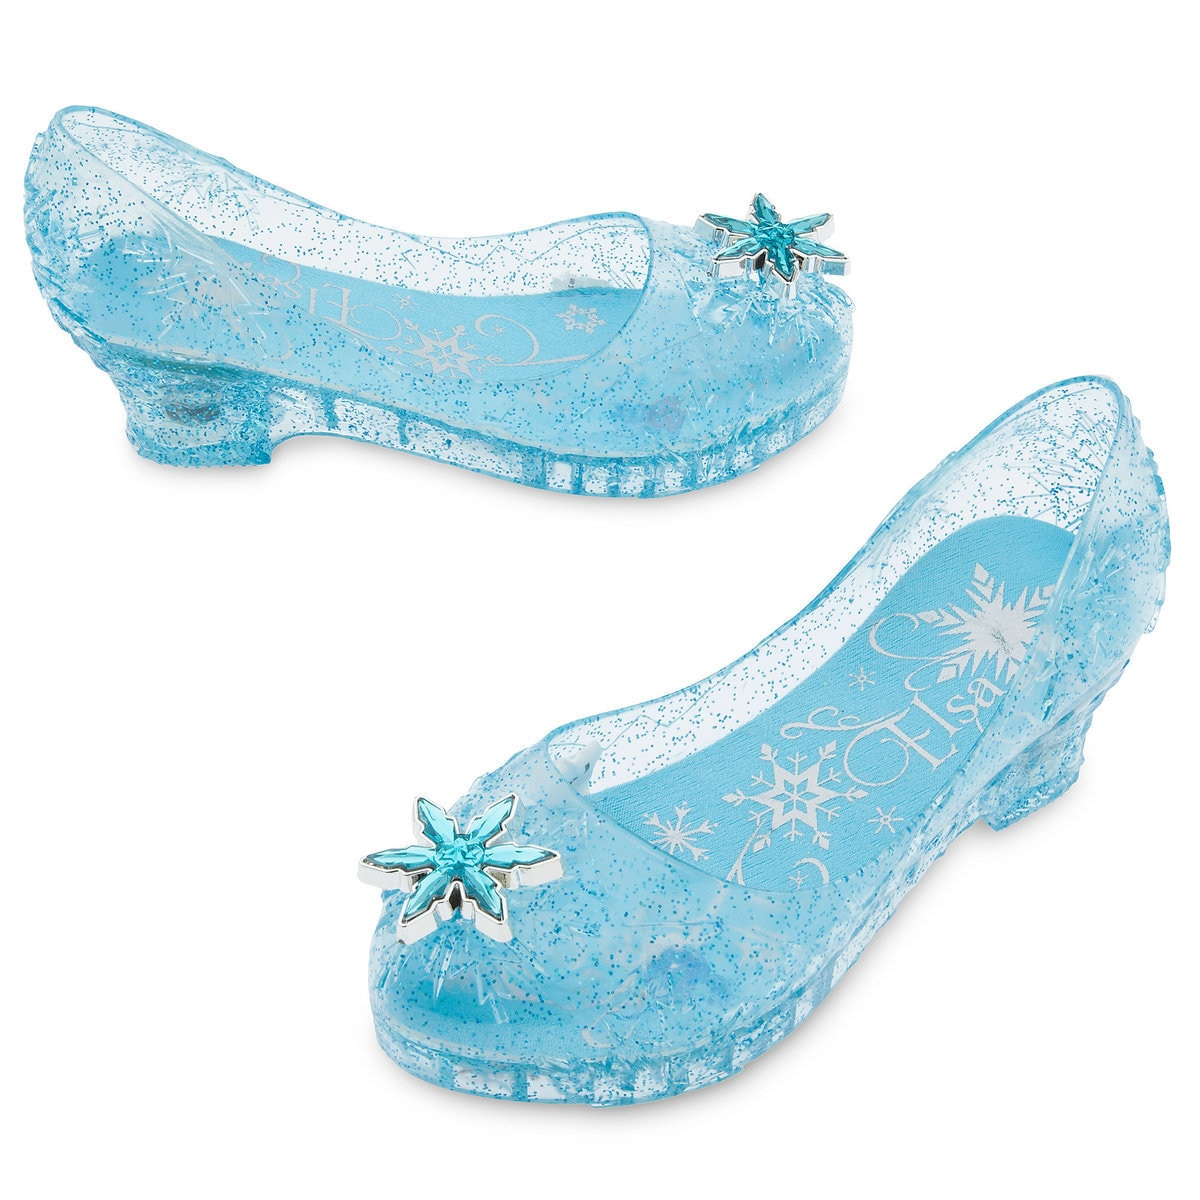 7db91c8d76fc Product Image of Frozen Light-Up Costume Shoes for Kids # 1